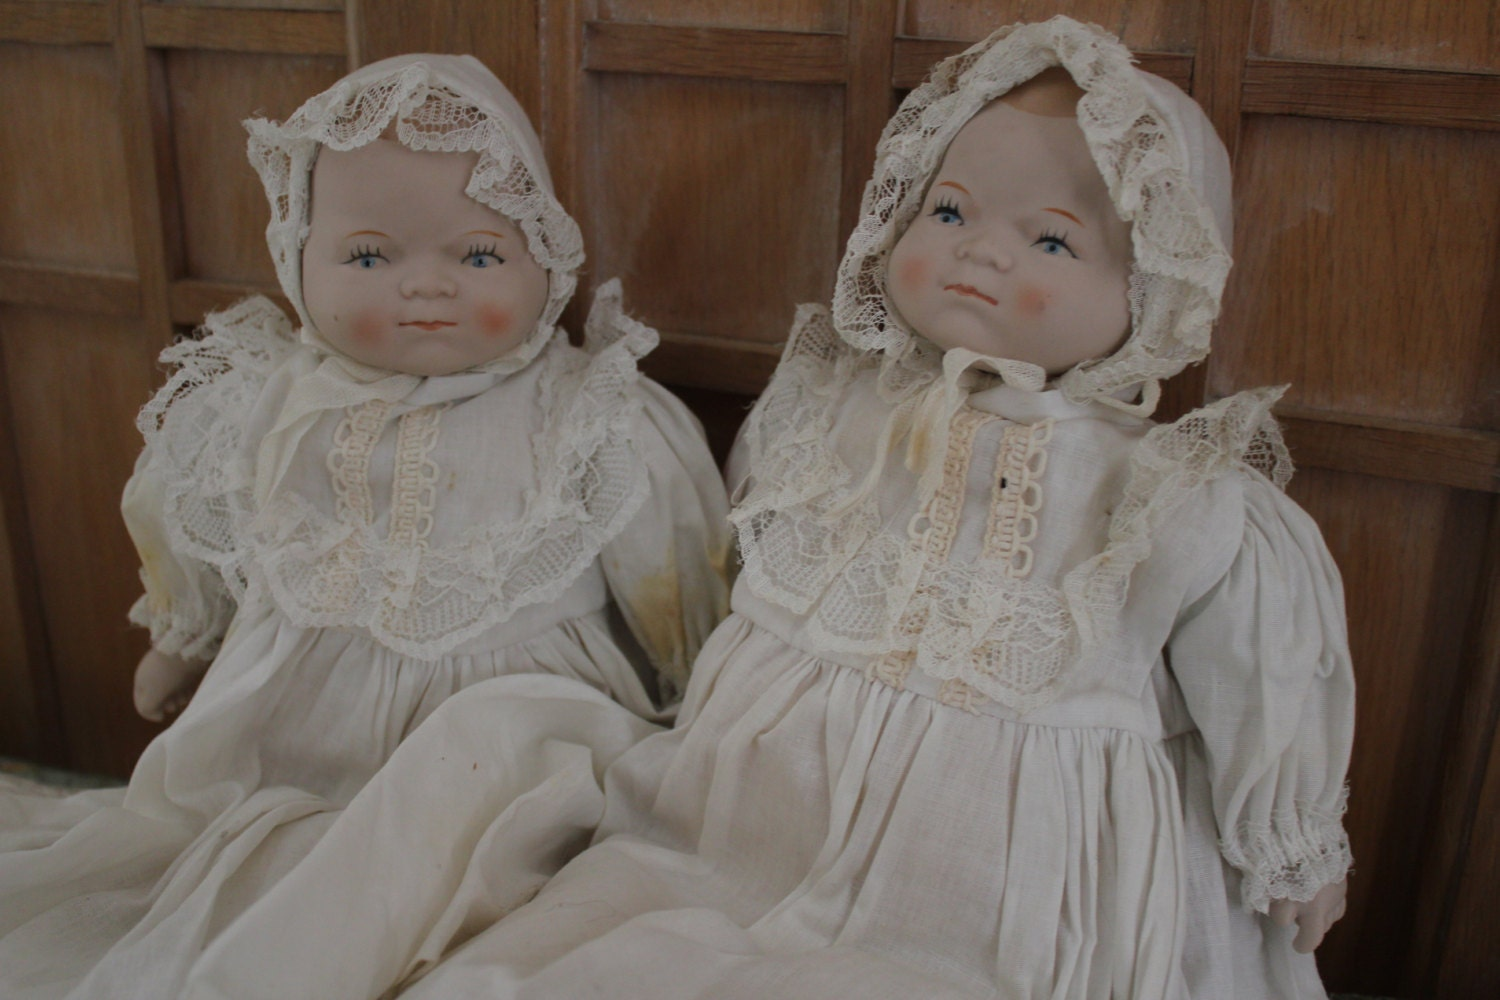 Shackman Baby Dolls 2 Made in Japan Vintage Doll